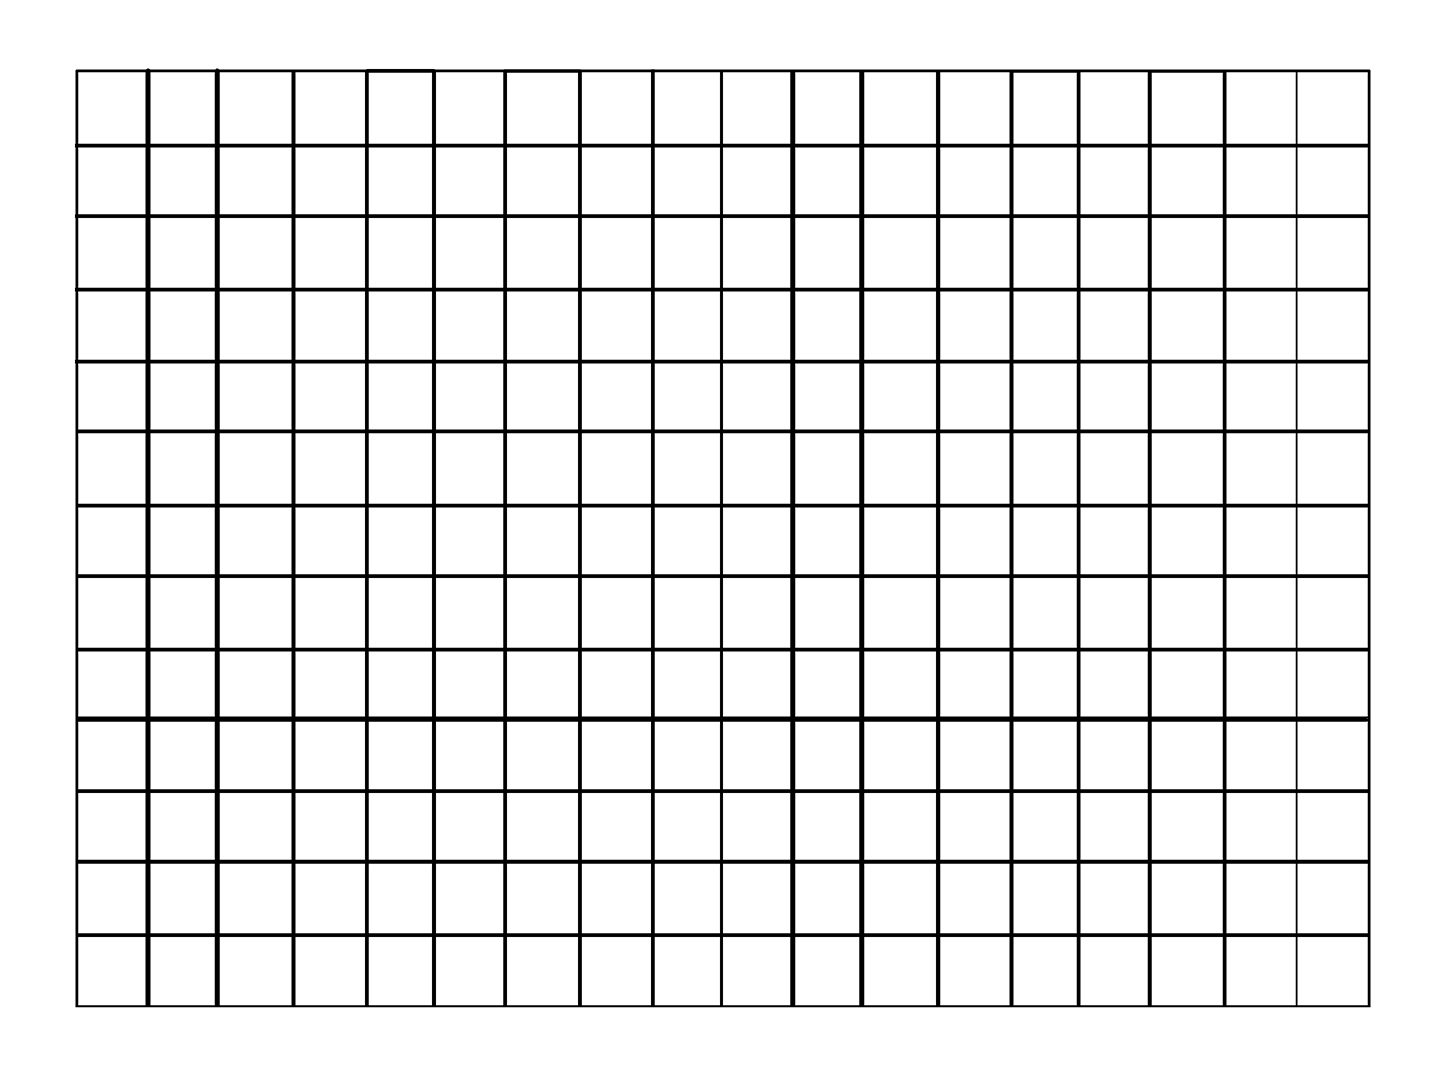 Blank Crossword Puzzle Grid - Yapis.sticken.co - Printable Blank Crossword Grid